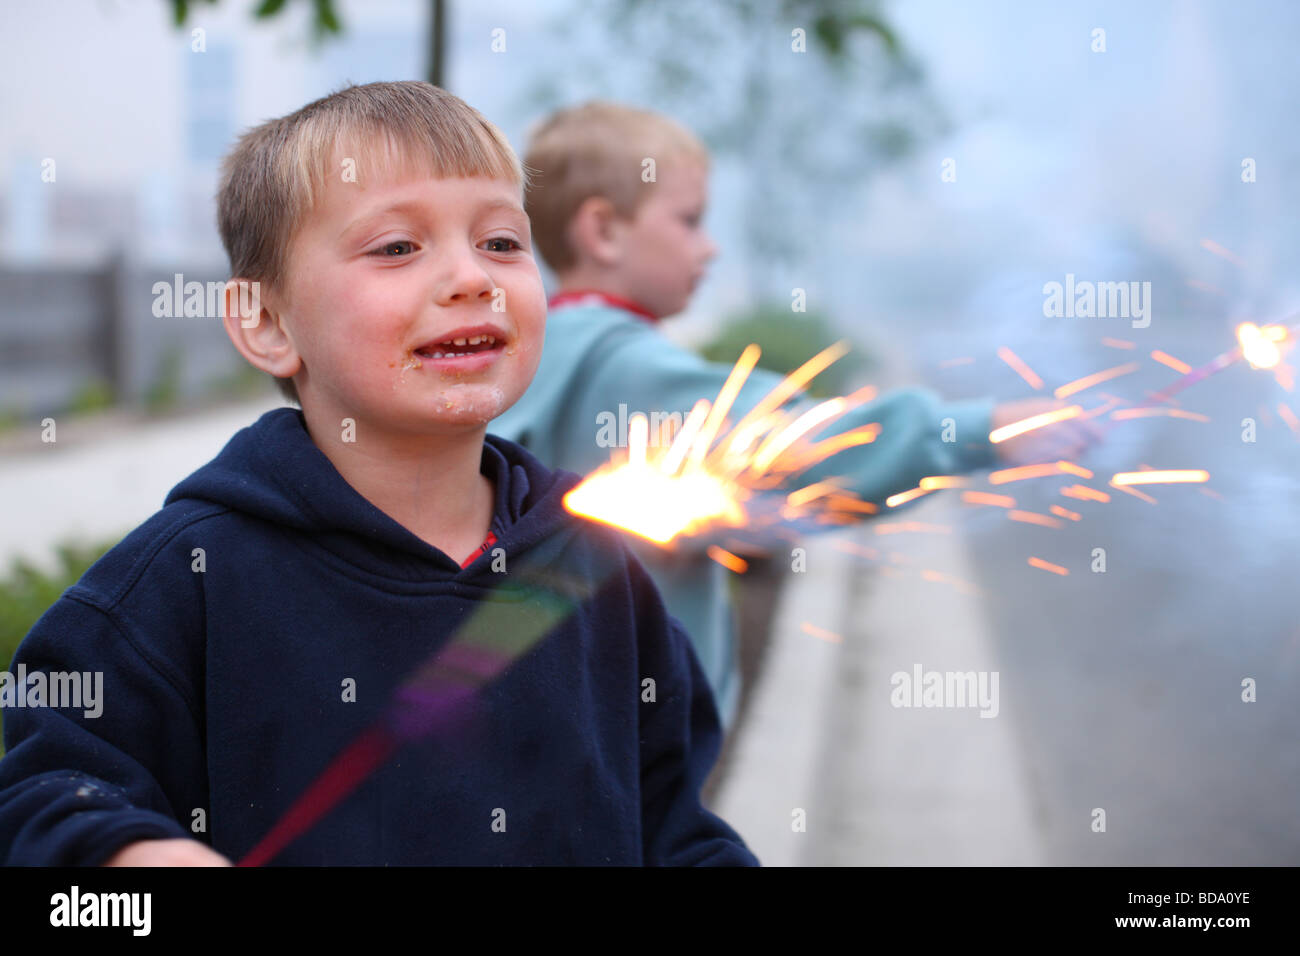 Two young boys with 4th of July sparklers - Stock Image